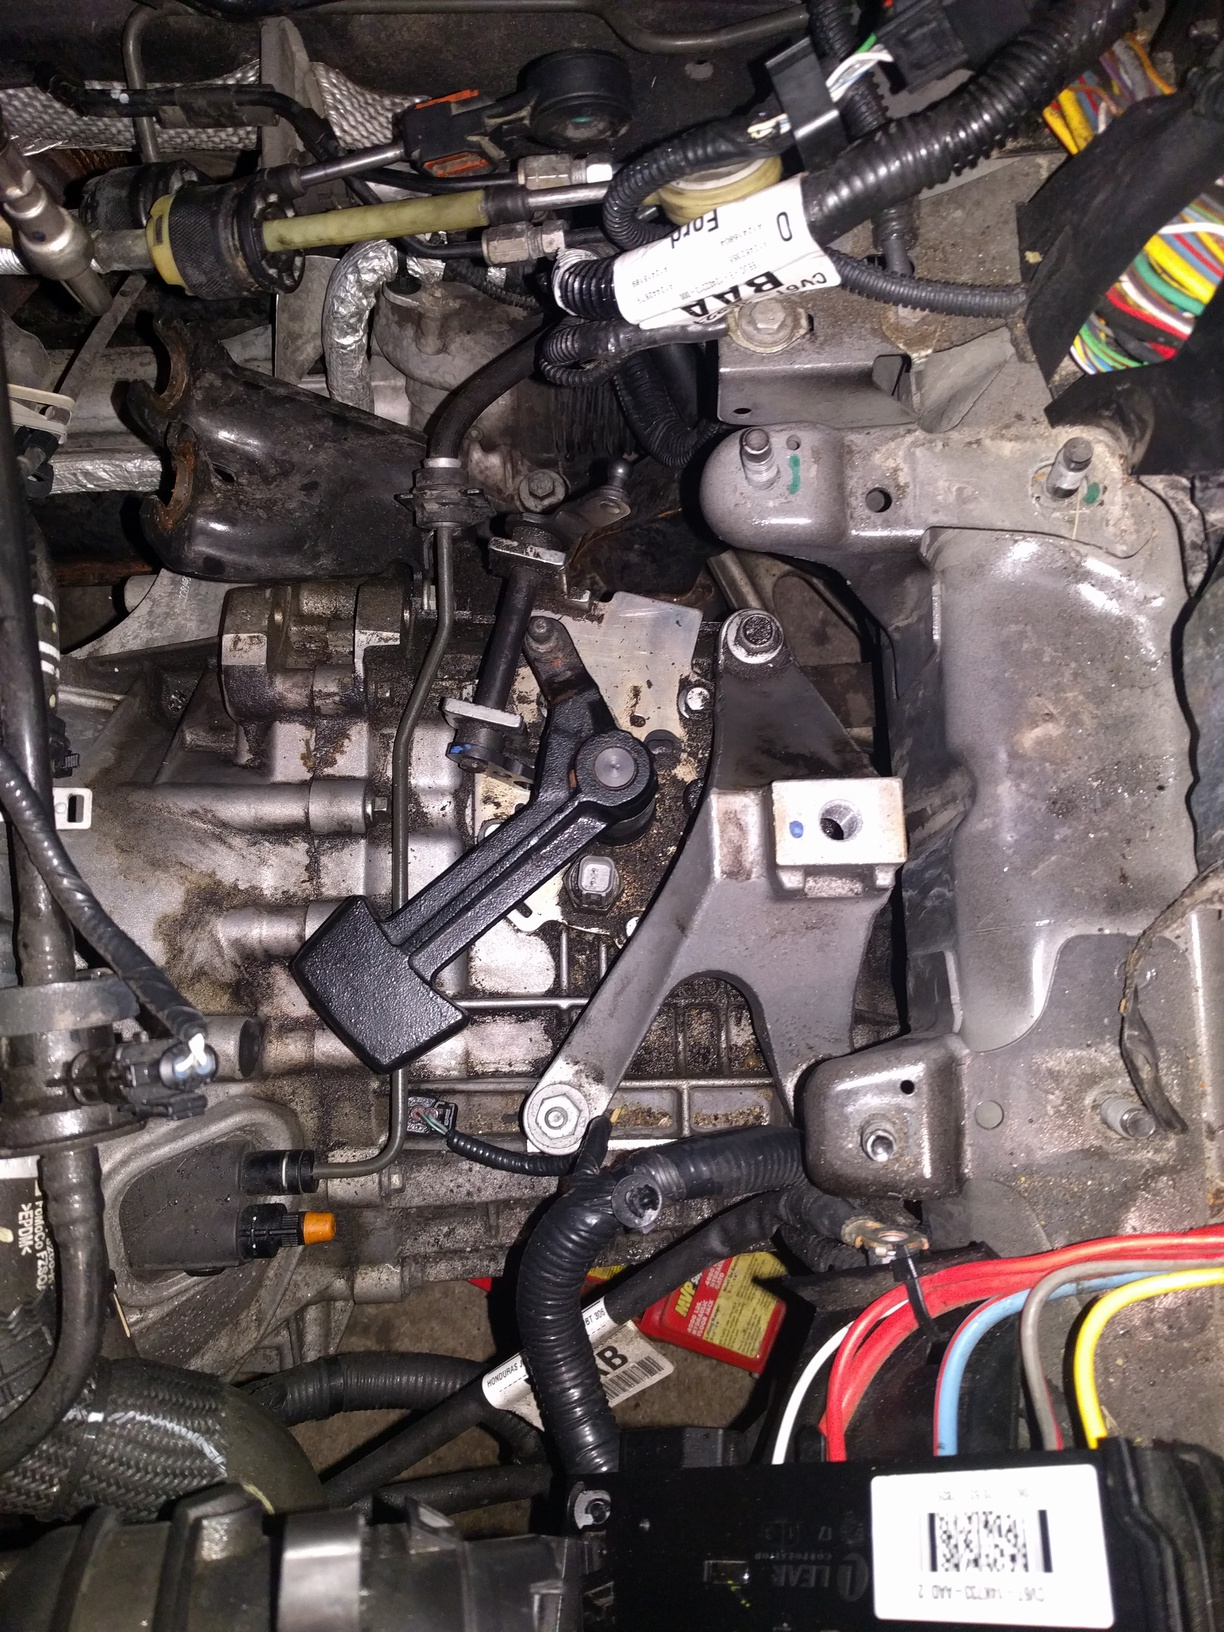 2012 Ford Focus 5mt Transmission Problems Ford Focus Forum Ford